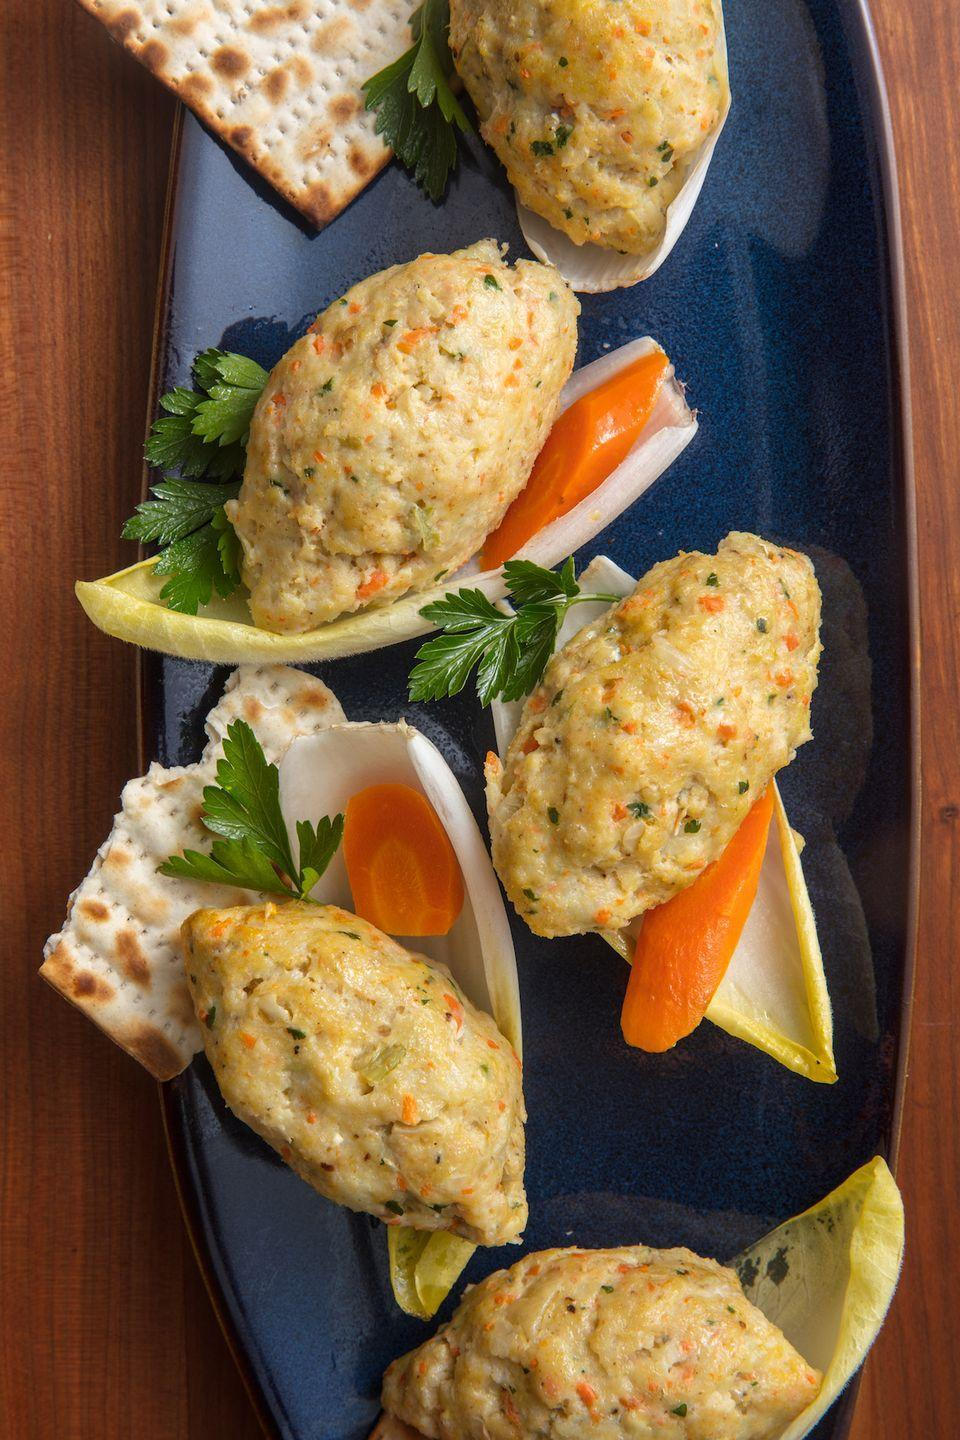 """<p>According to Jewish dietary laws, fish is allowed to be eaten with both dairy and meat meals (though the two can't be eaten with each other). Hence the ubiquity of </p><p>Get the recipe from <a href=""""https://www.delish.com/cooking/recipe-ideas/a19473685/gefilte-fish-recipe/"""" rel=""""nofollow noopener"""" target=""""_blank"""" data-ylk=""""slk:Delish"""" class=""""link rapid-noclick-resp"""">Delish</a>. </p>"""